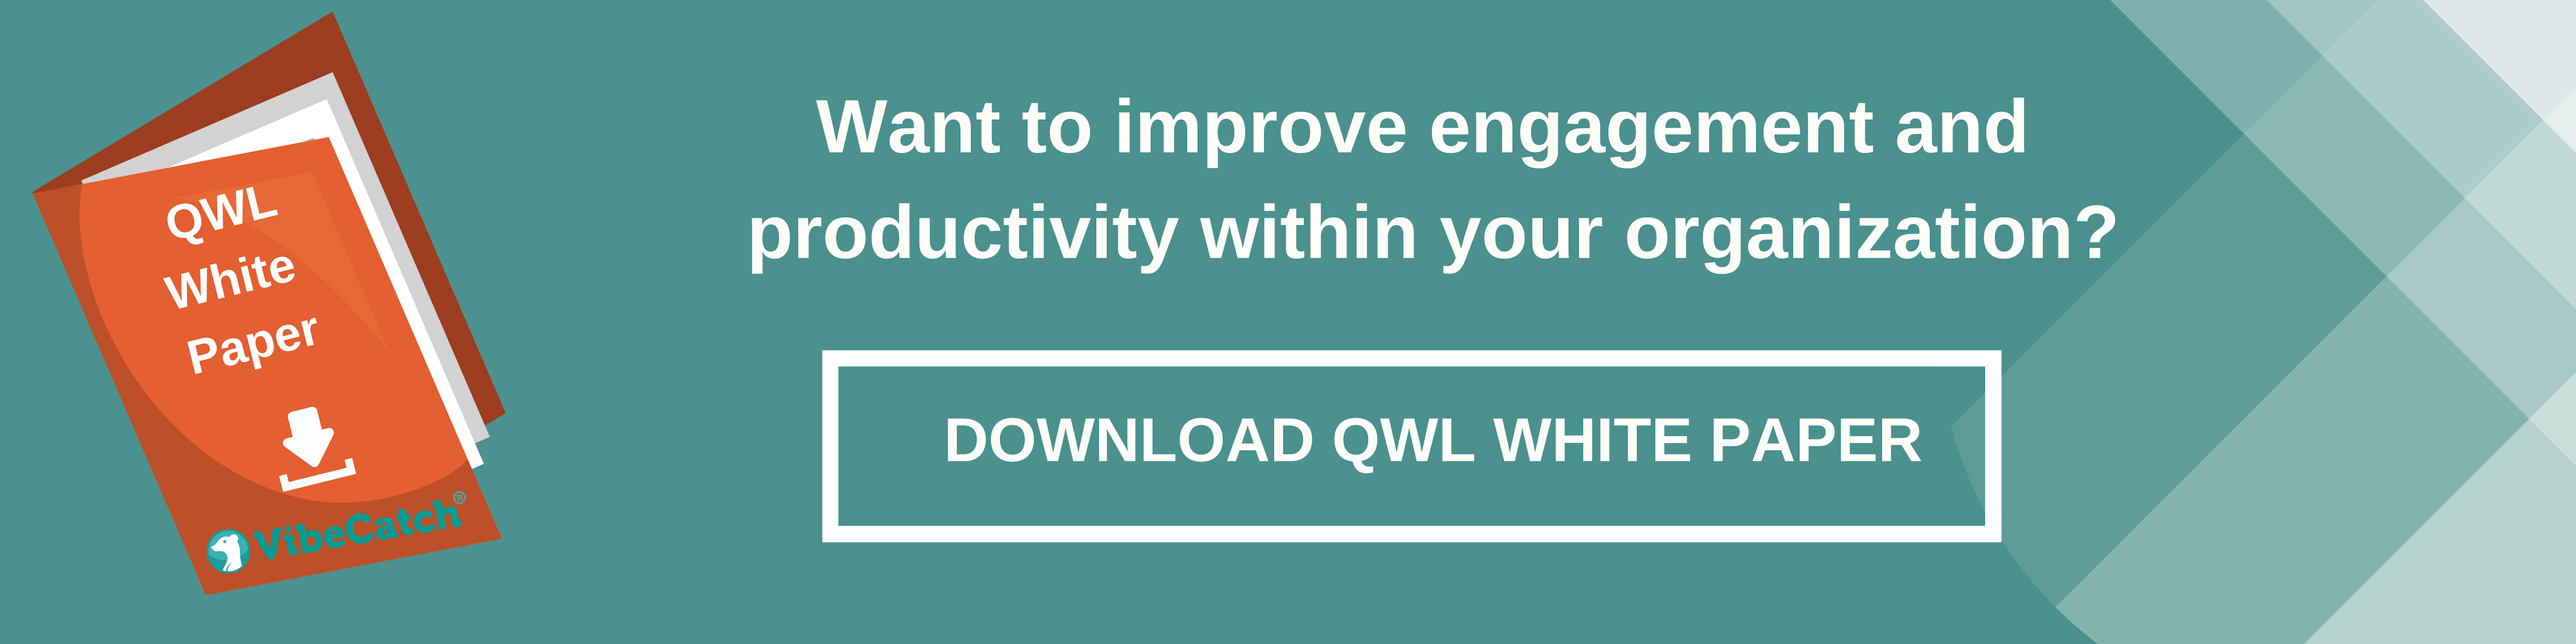 Download QWL White Paper